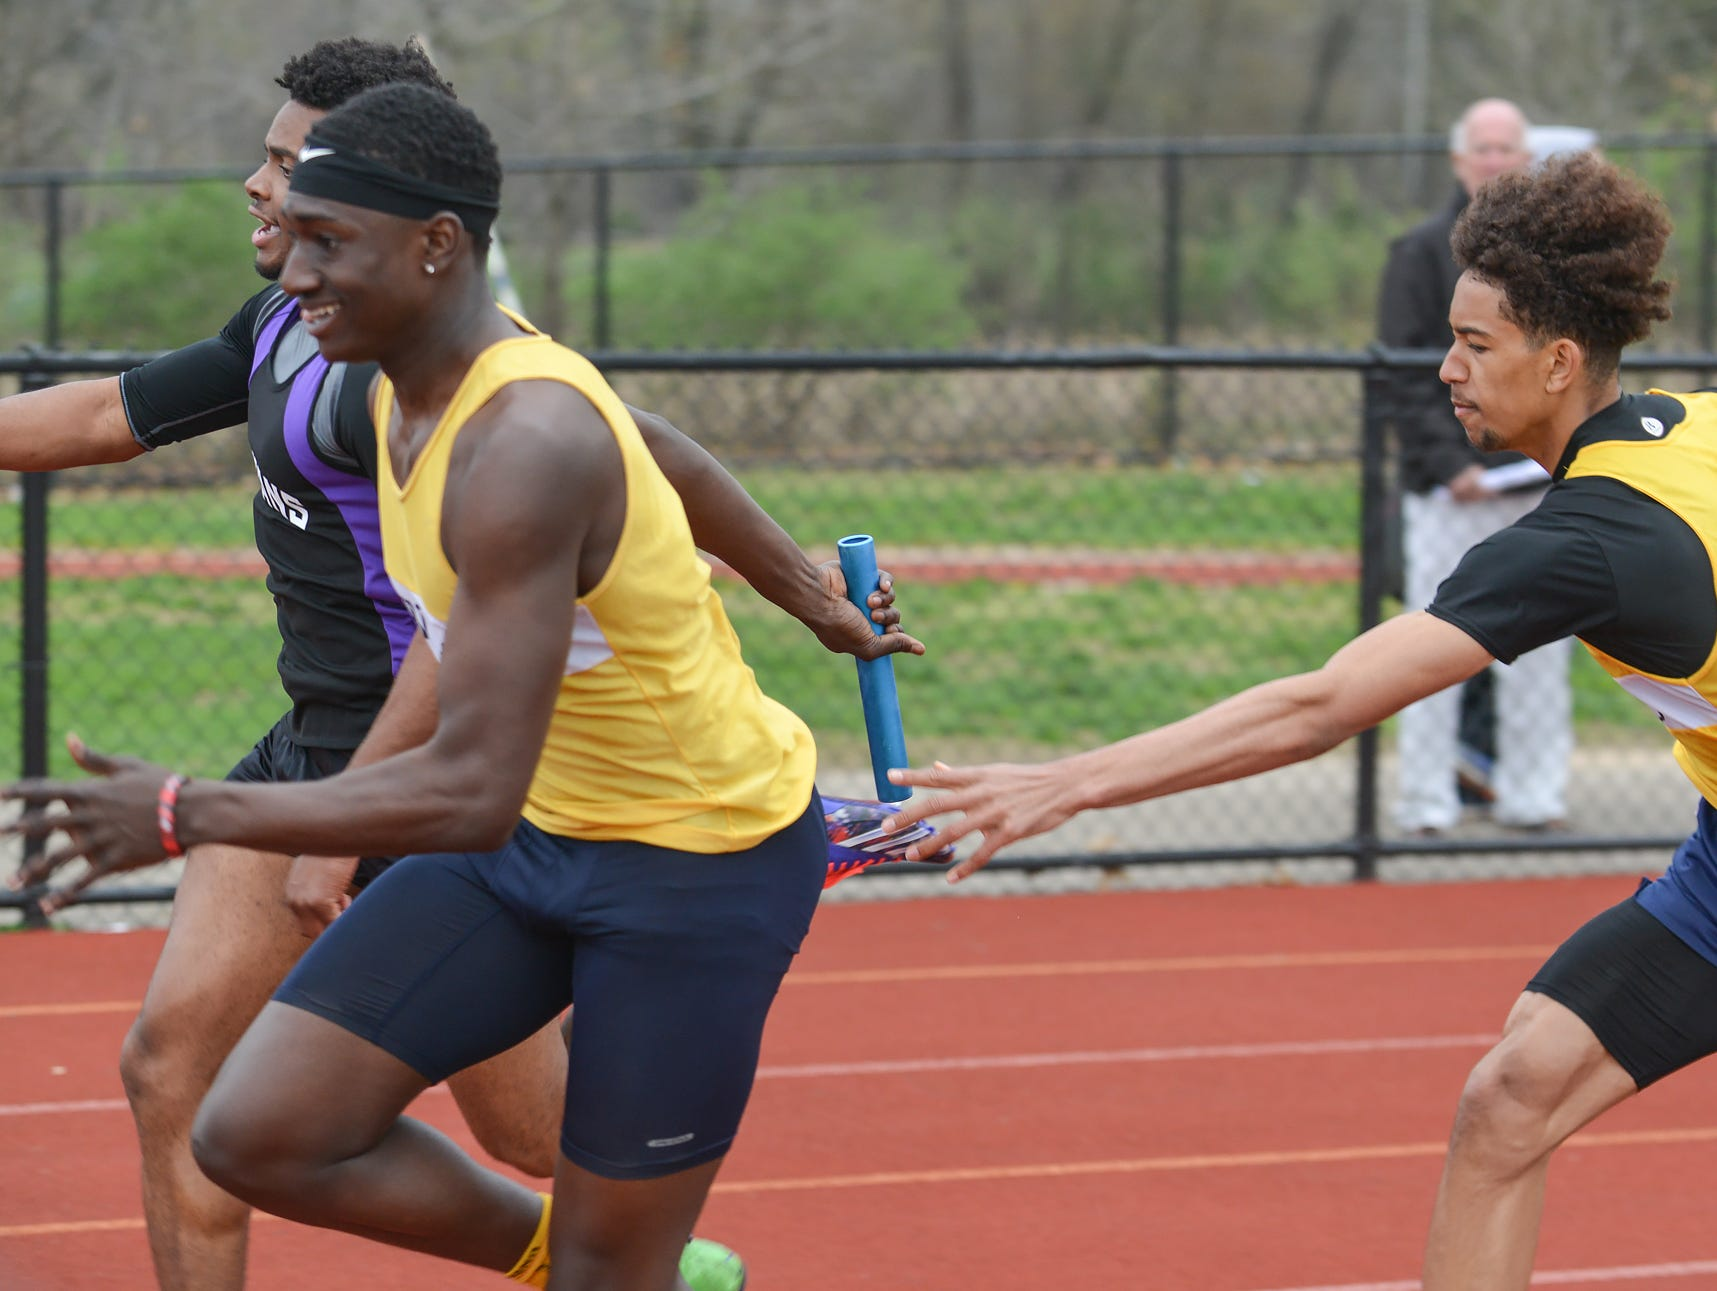 Battle Creek participates in the 800 Meter Relay during the 2016 All City Track Meet held at Harper Creek High School Friday afternon.